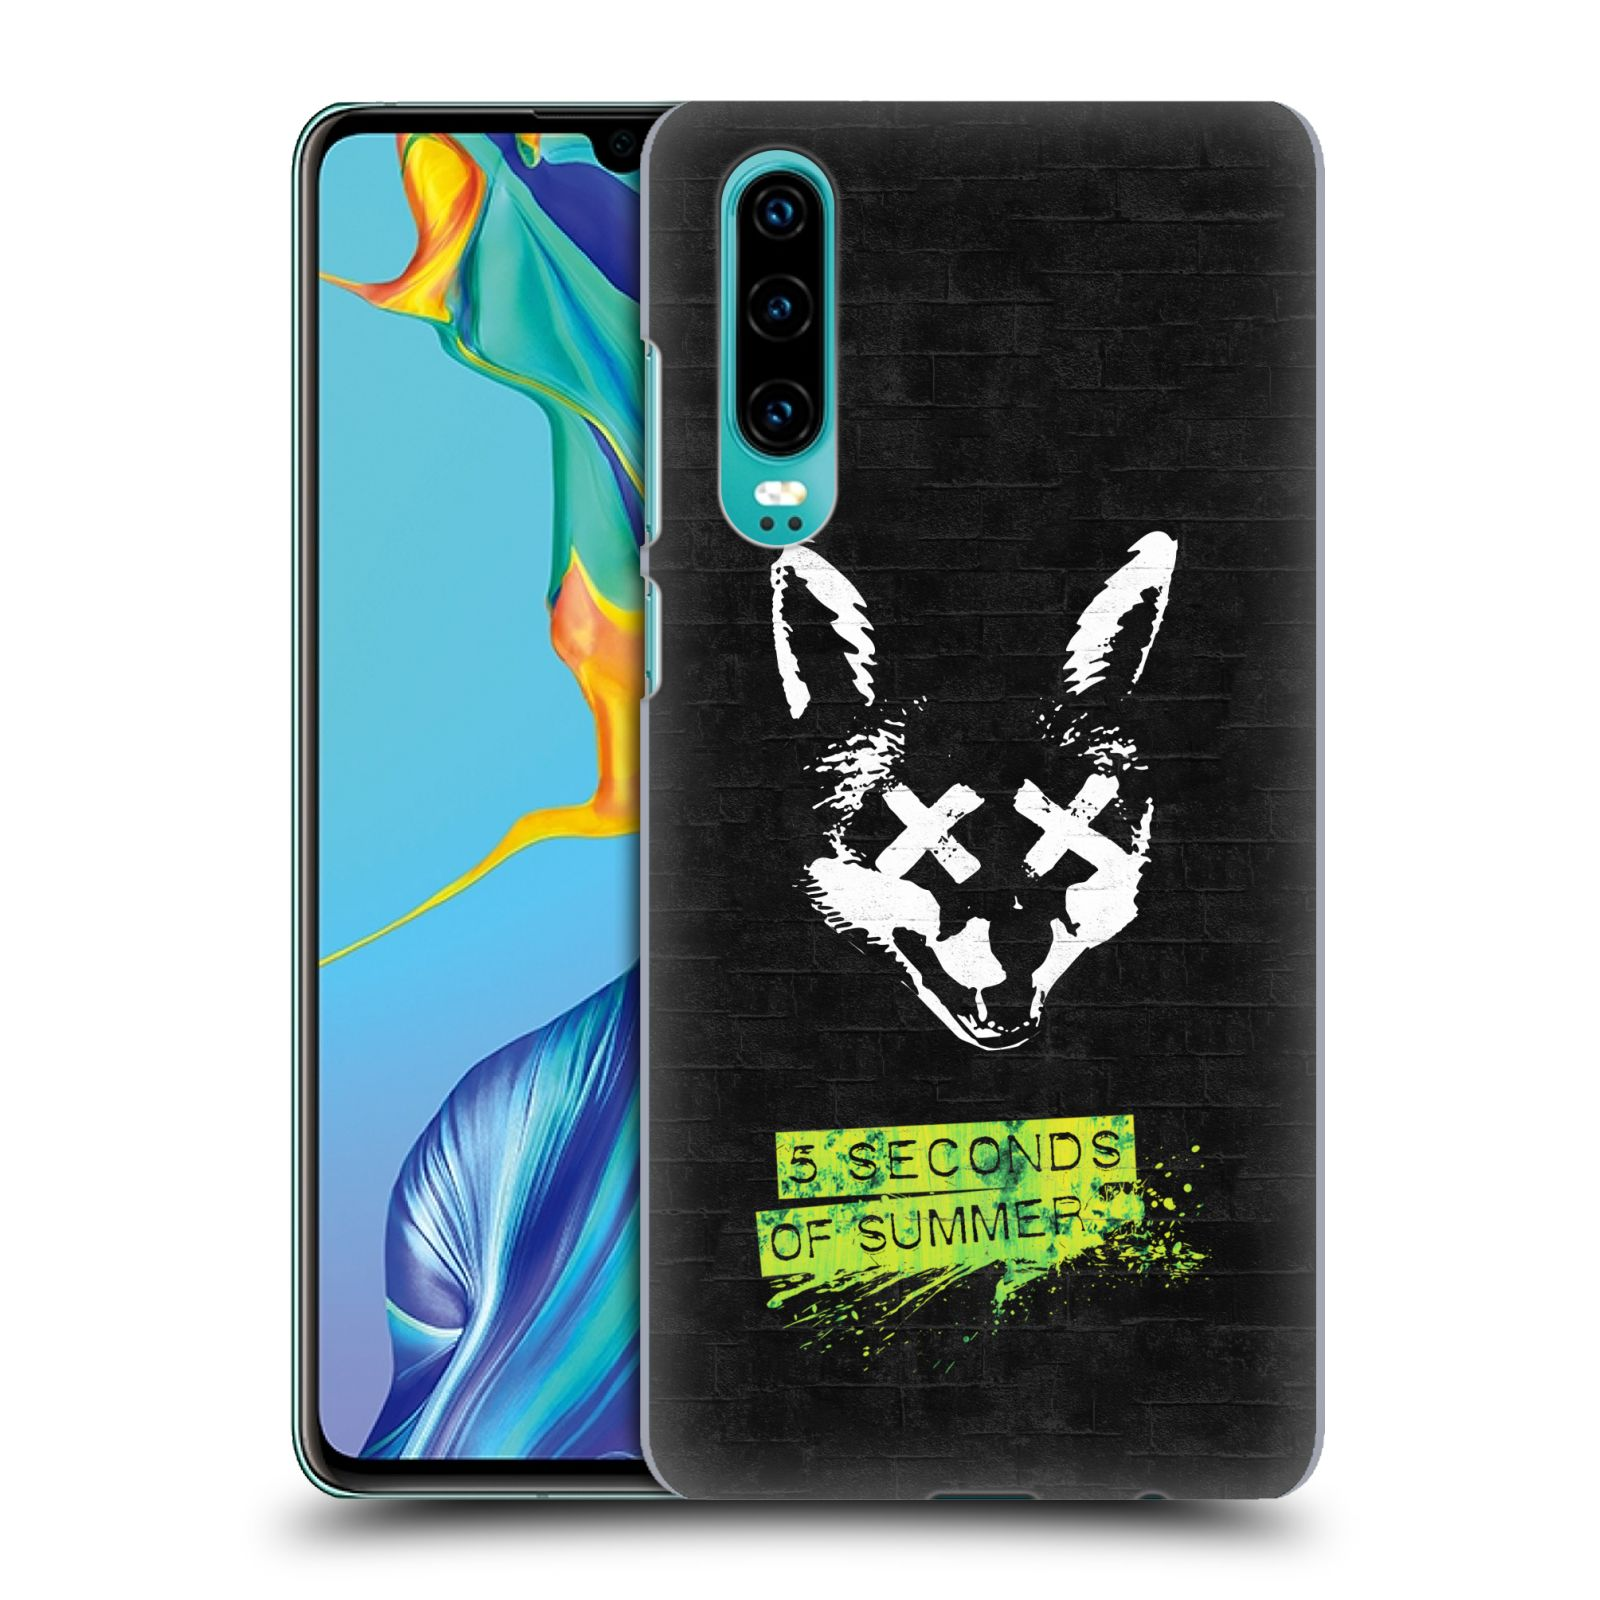 Plastové pouzdro na mobil Huawei P30 - Head Case - 5 Seconds of Summer - Fox